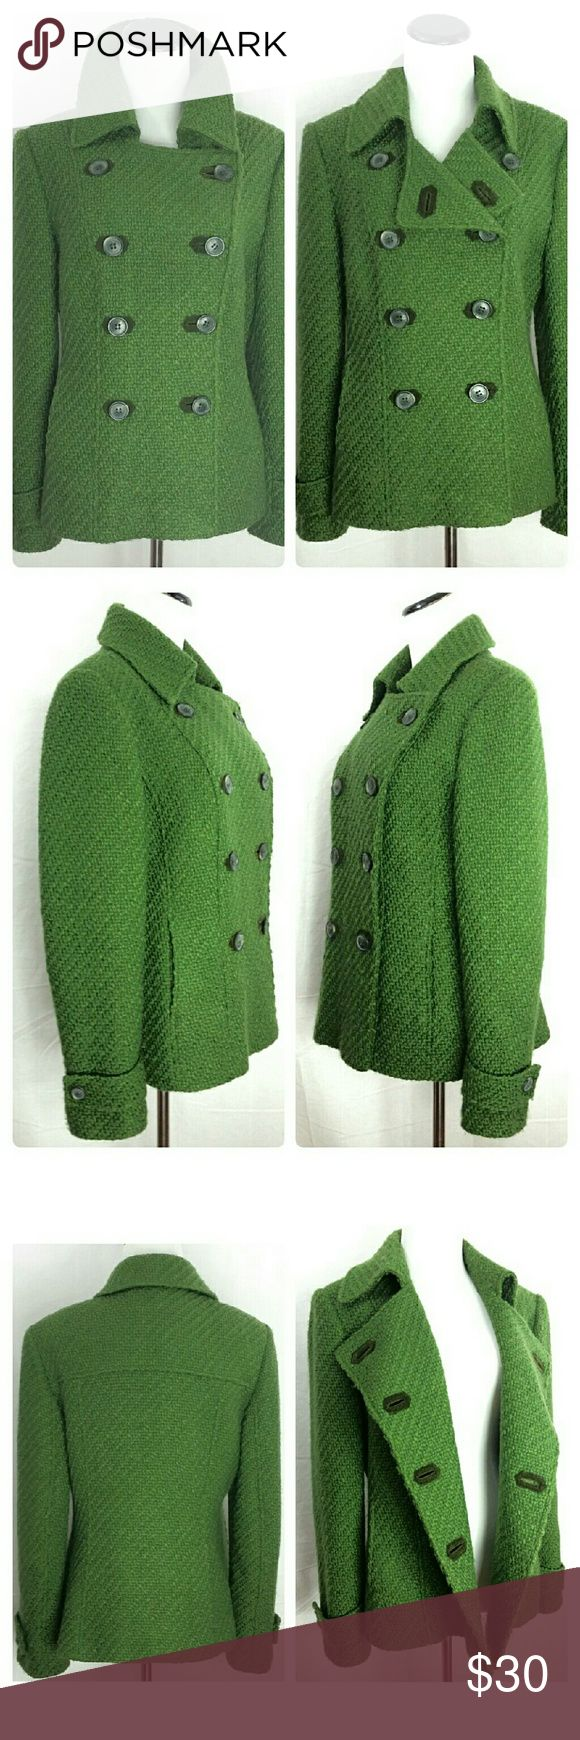 """MARKS & SPENCER Green Wool Blend Pea Coat EUC Add a touch of feminine style to your wardrobe with Marks & Spencer's Per Una collection for women, packed with confident colour and trend-led prints.  This Gorgeous Green Wool Blend Pea Coat Will keep you warm and stylish at the same time! Fitted, Double Breasted, Two Pockets, and Fully Lined Quality made with reinforced buttons.  UK Size 14 -US Size conversion 12 / Large  Sleeve 24.5"""" - Shoulder 17"""" - Bust 19"""" - Length 24"""" Outer: 43% Wool; 55%…"""